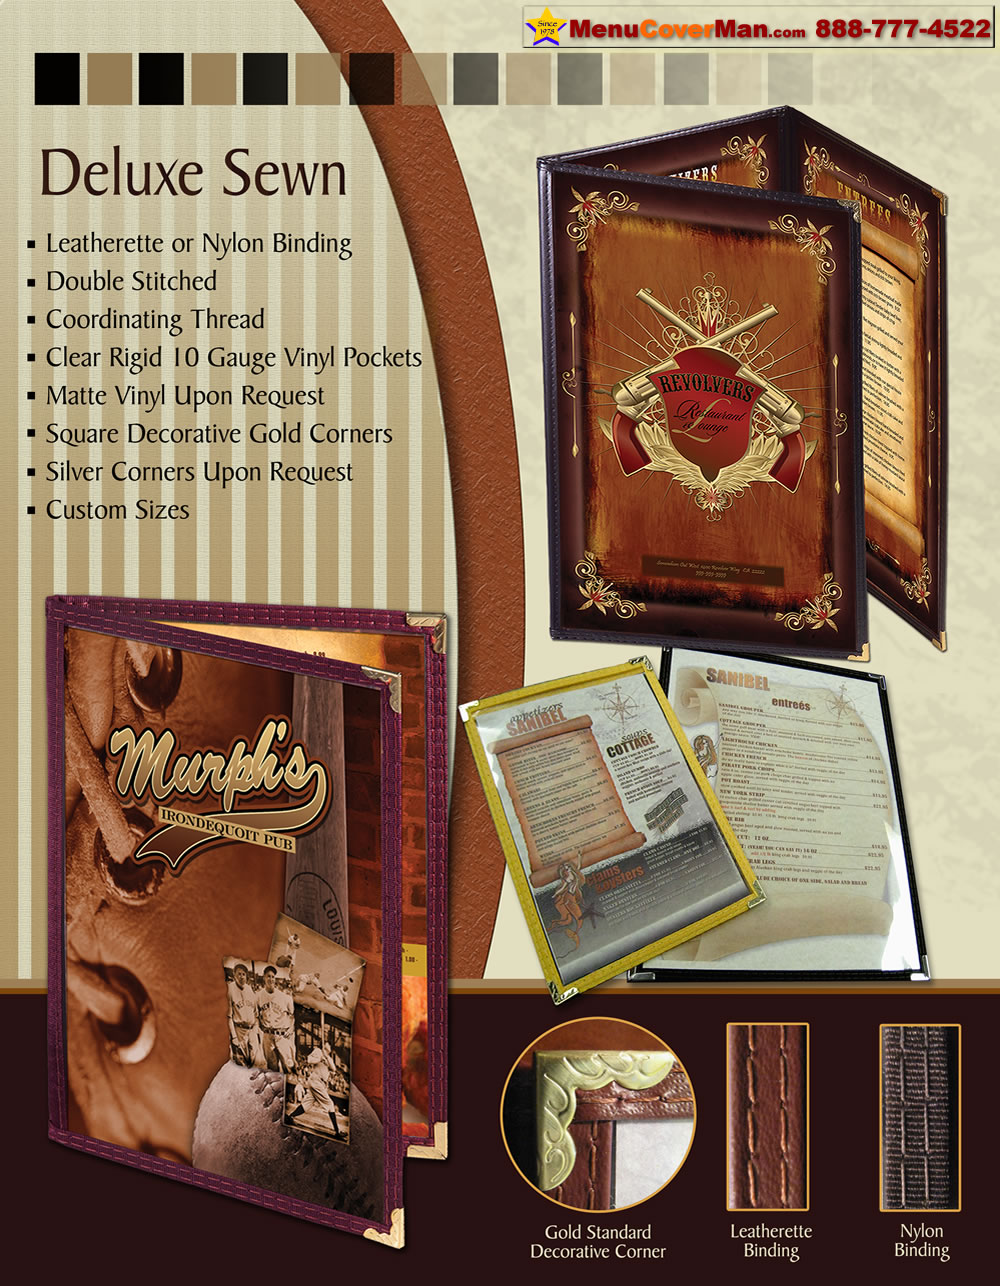 Picture of Menucoverman.com #DS-LEA-TEDQ-8.5X14 - Deluxe Sewn Menu Covers-3 Pocket-6 View-ThirdPkt,1/2-Size